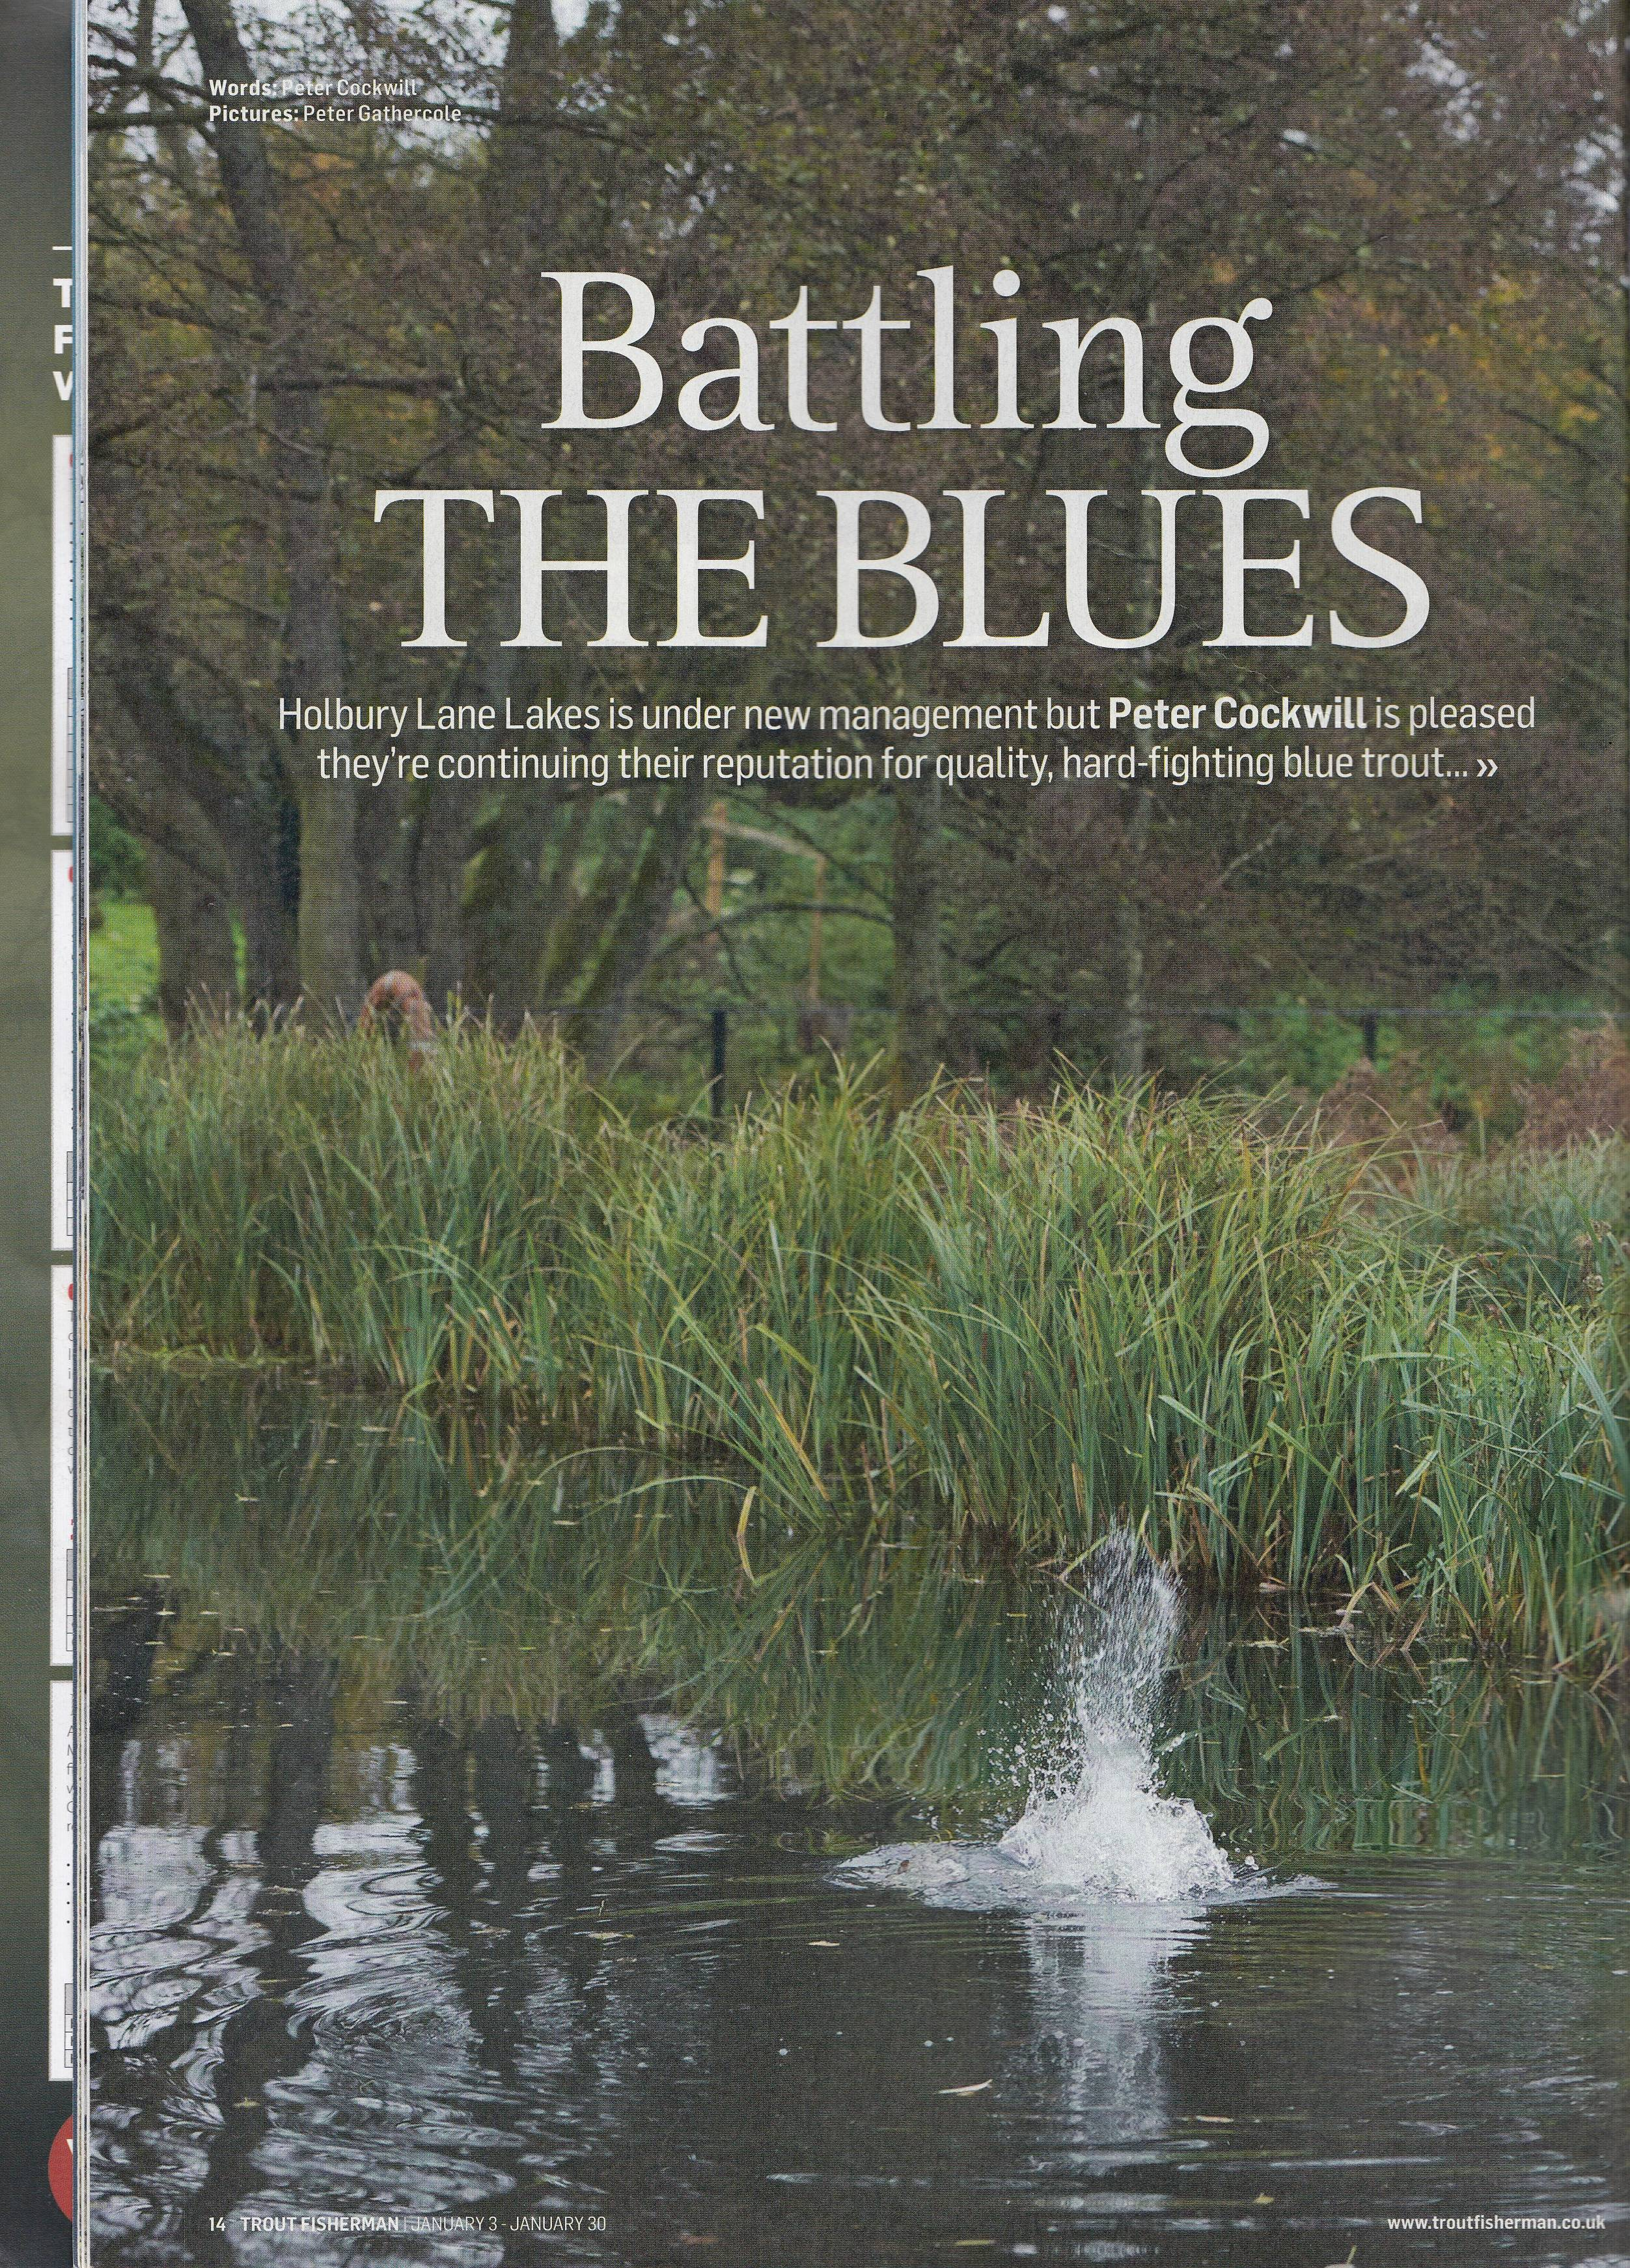 Battling the Blues - Trout Fisherman Holbury Lakes Page 1